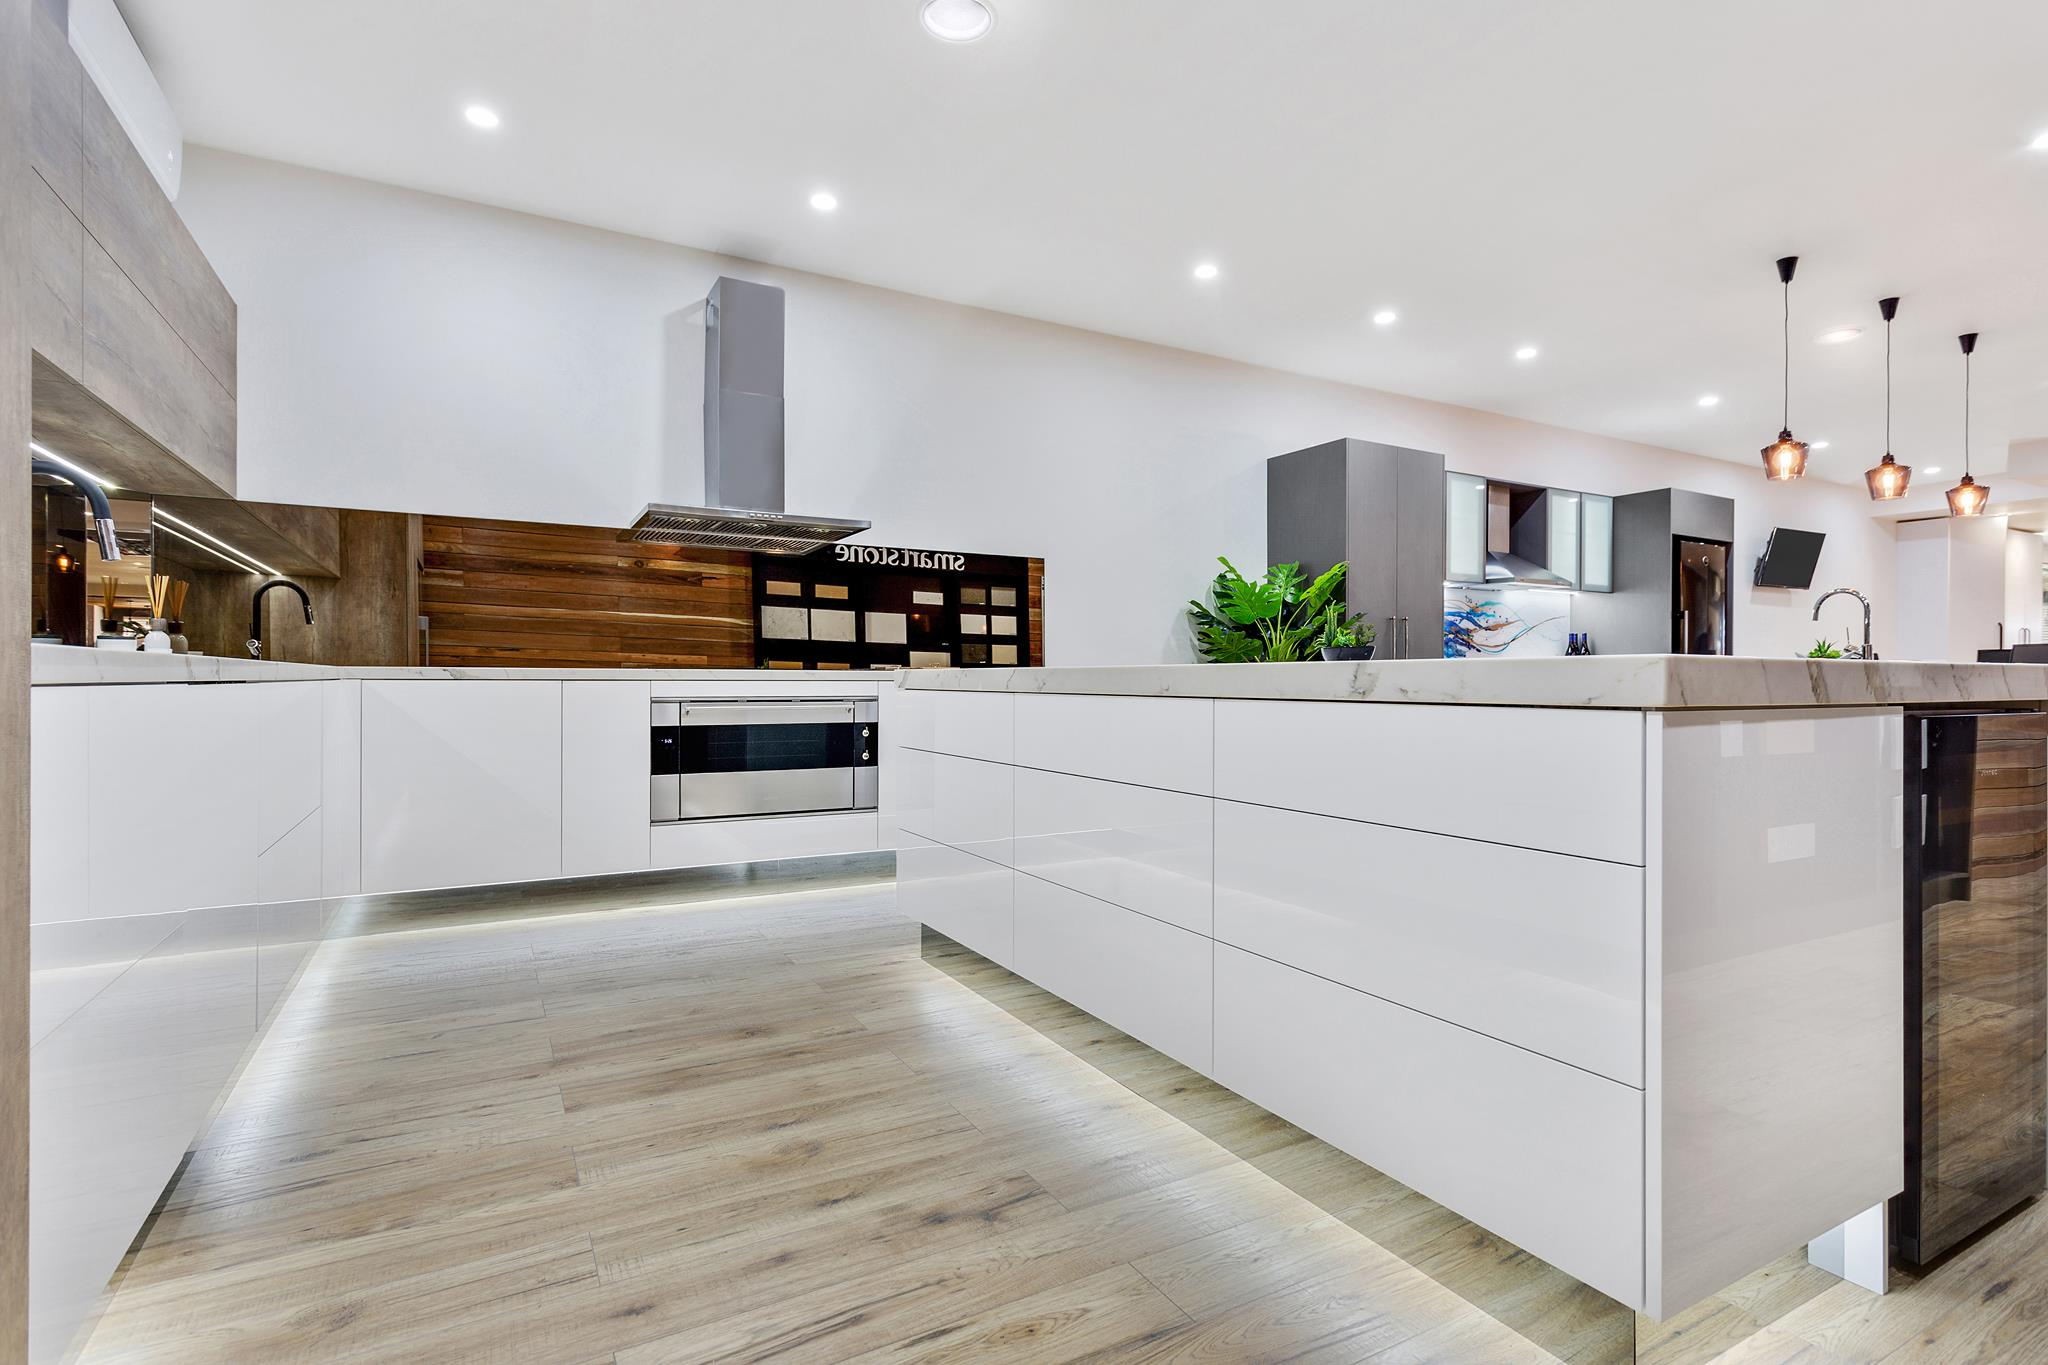 Flat Pack Queensland kitchen showroom 2